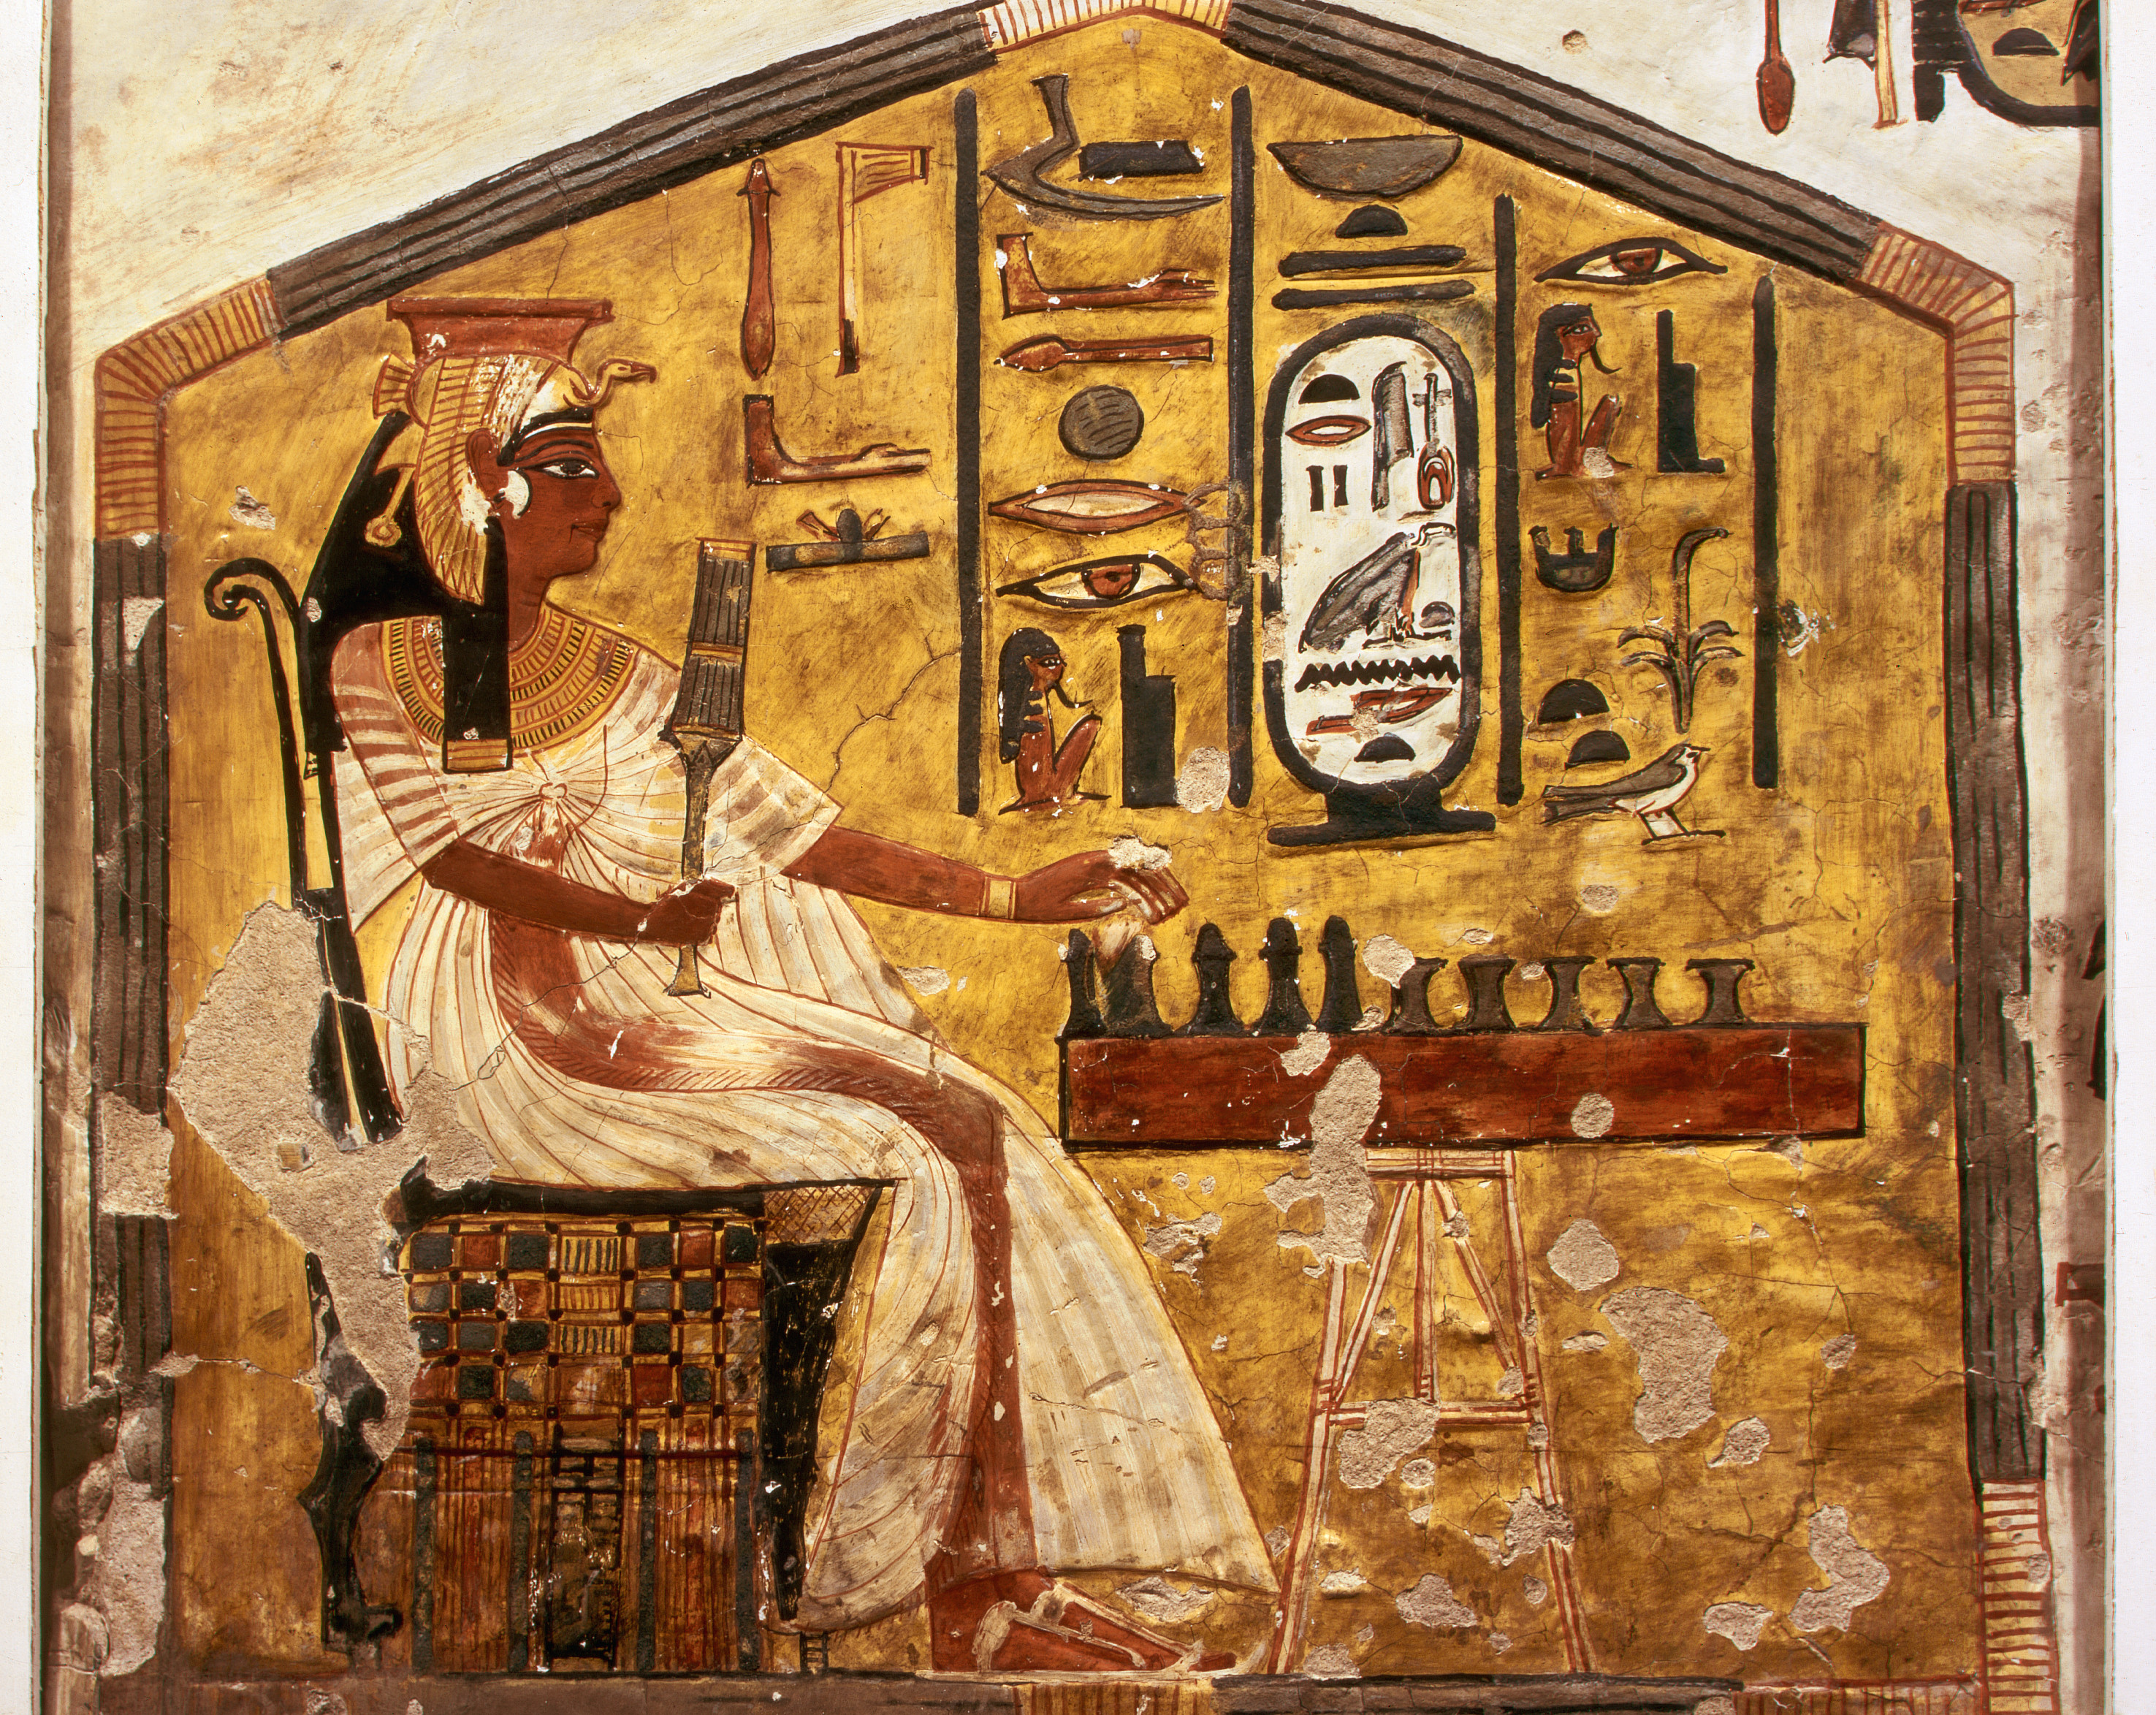 Incroyable Queen Nefertiti, 1320 BCE, 1200 BCE, Ancient Egypt, Egyptian Relief Painting